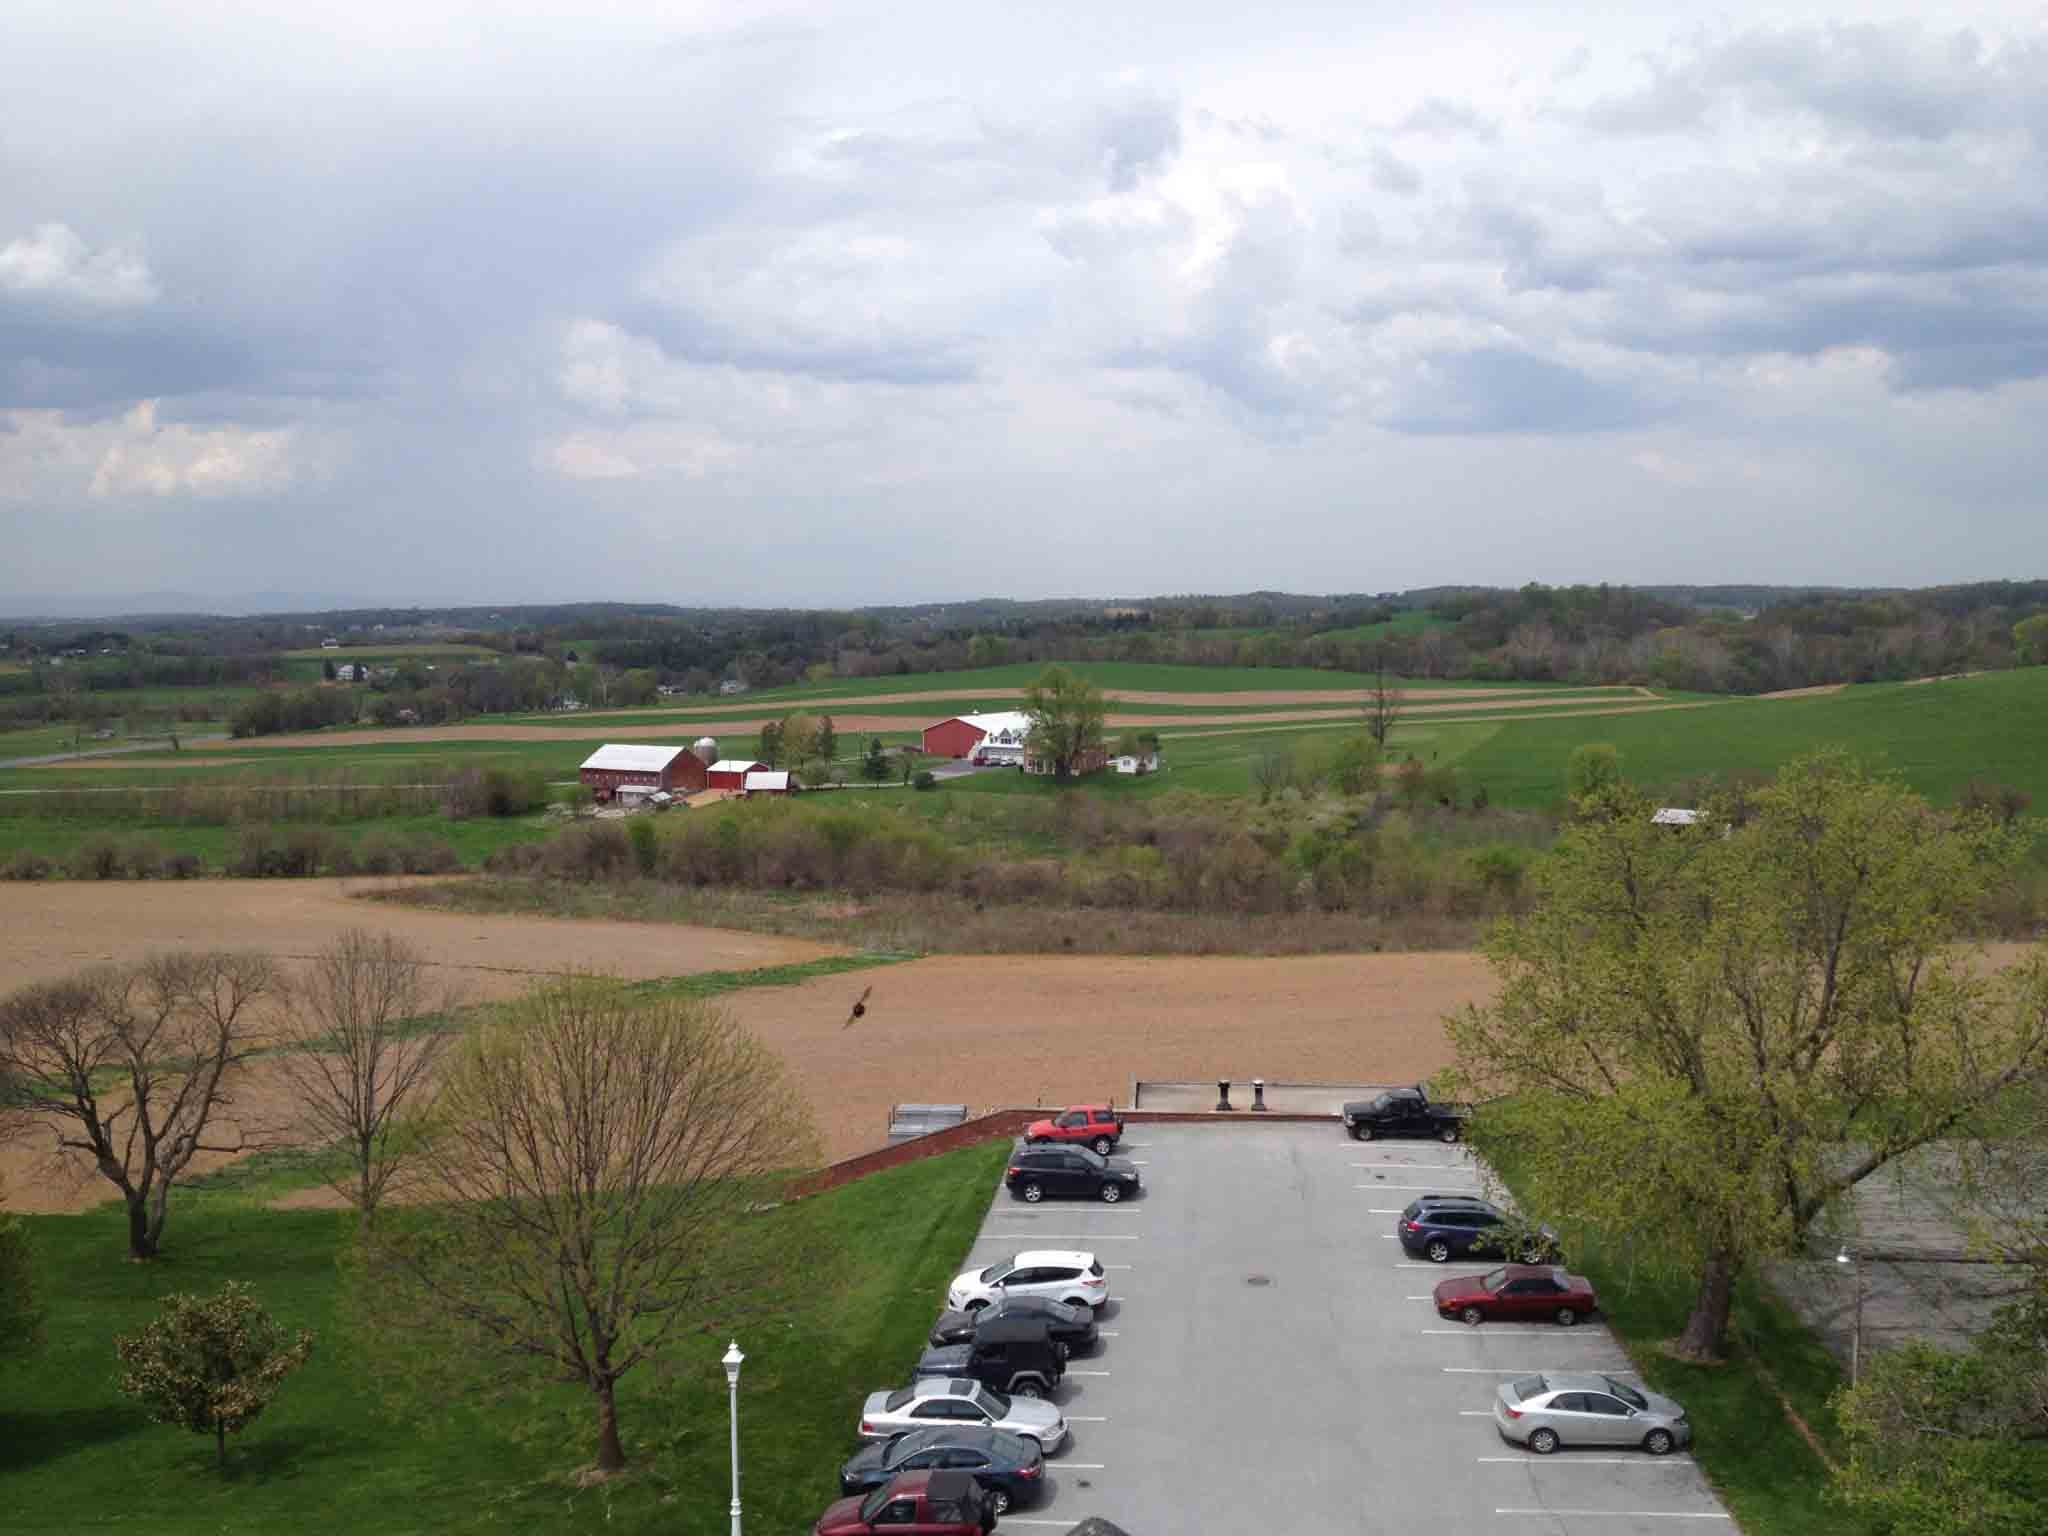 Overlooking the parking lot of the Brethren Service Center in New Windsor, Maryland.